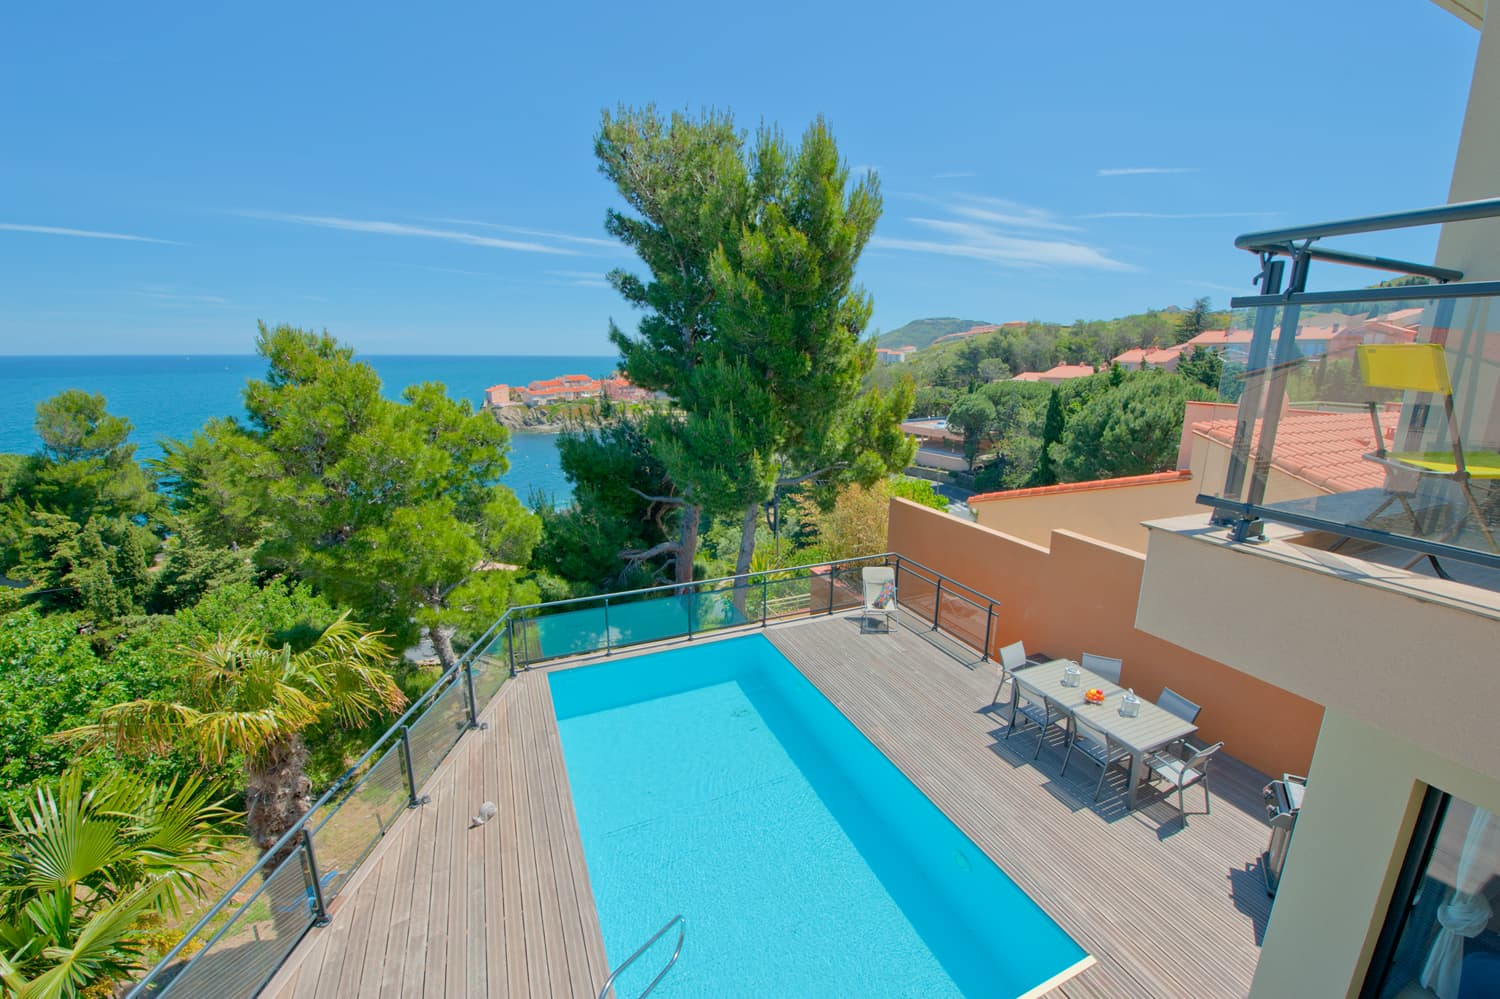 Holiday villa with sea views and private swimming pool in the South of France | Villa Impériale